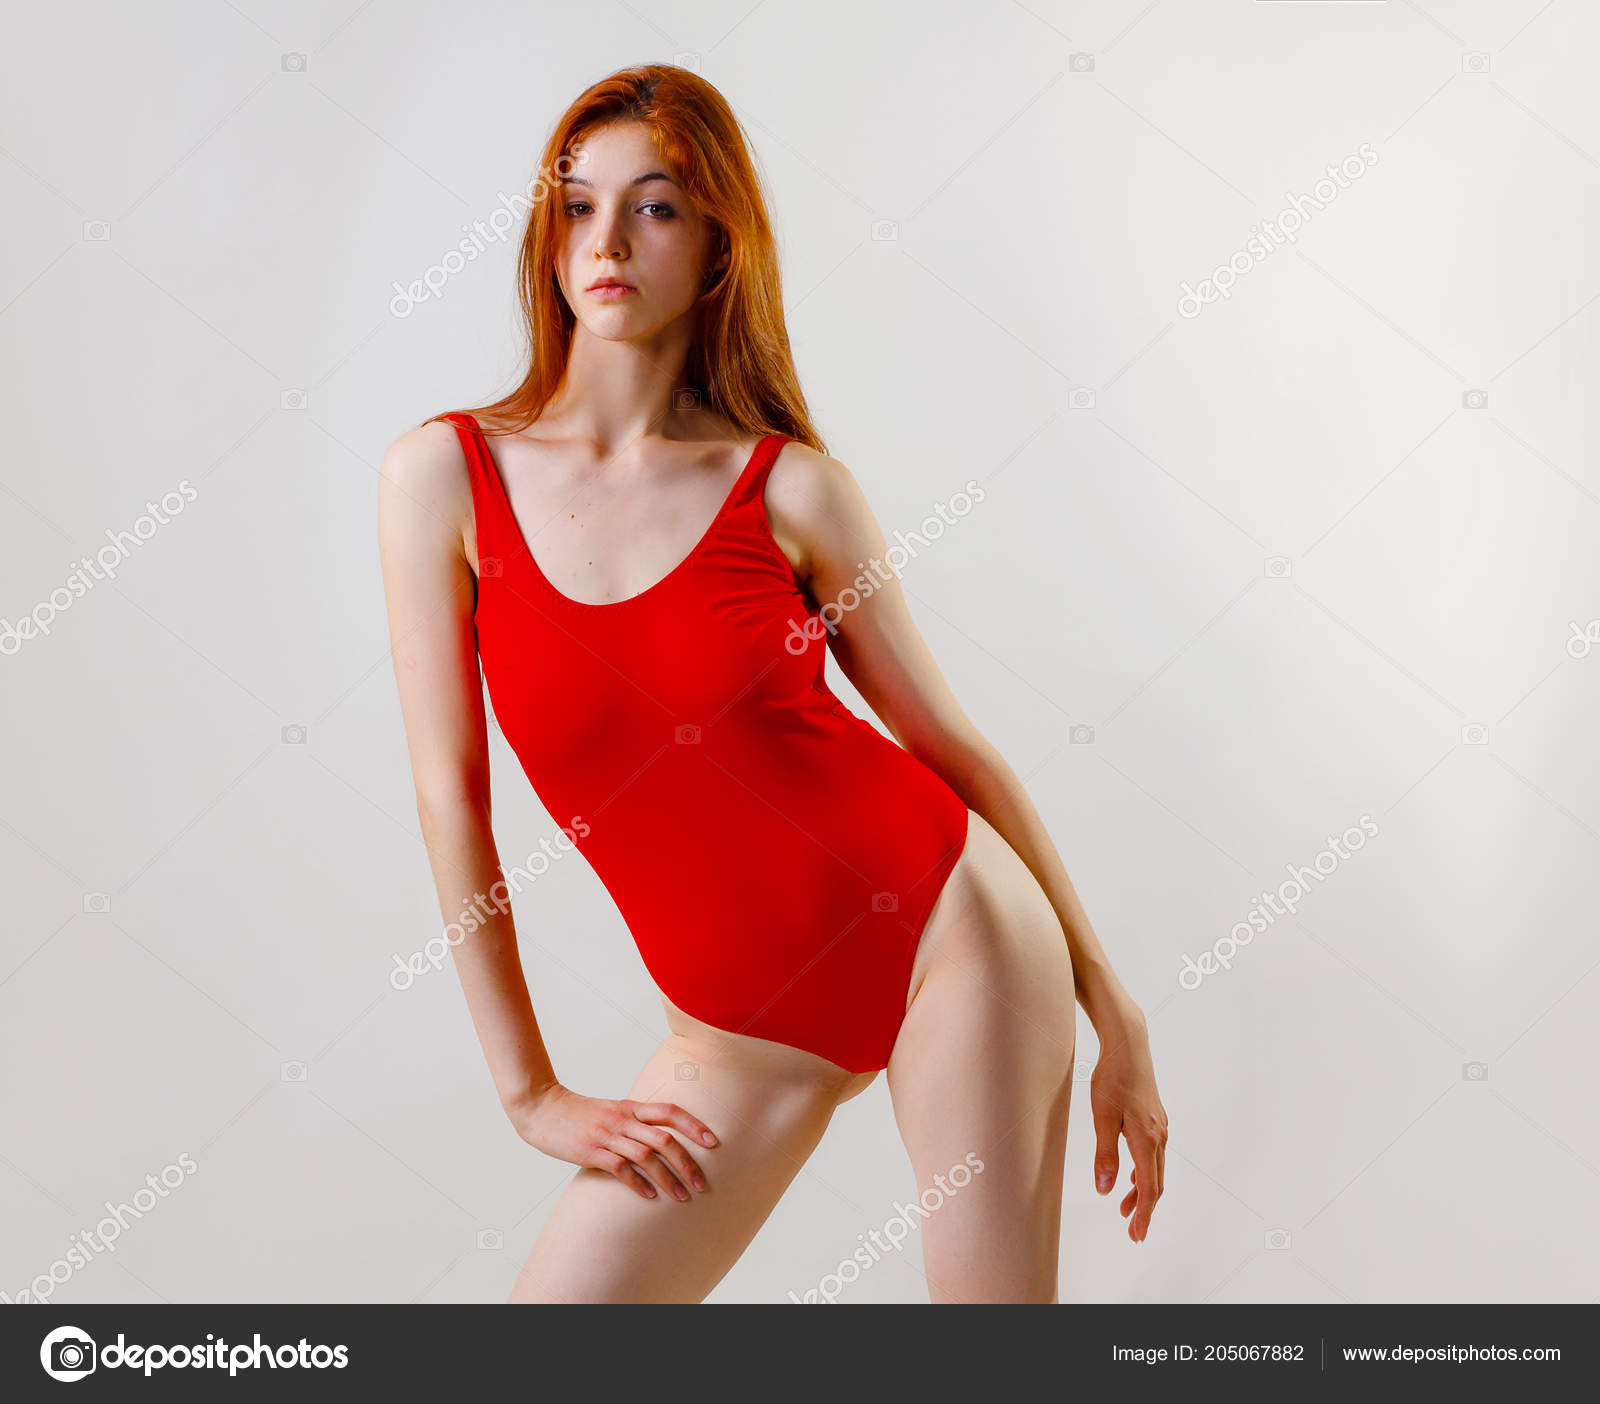 d4d9fdef66e Young Sexy Slim Woman Red Swimsuit Posing Studio Full Length — Stock Photo